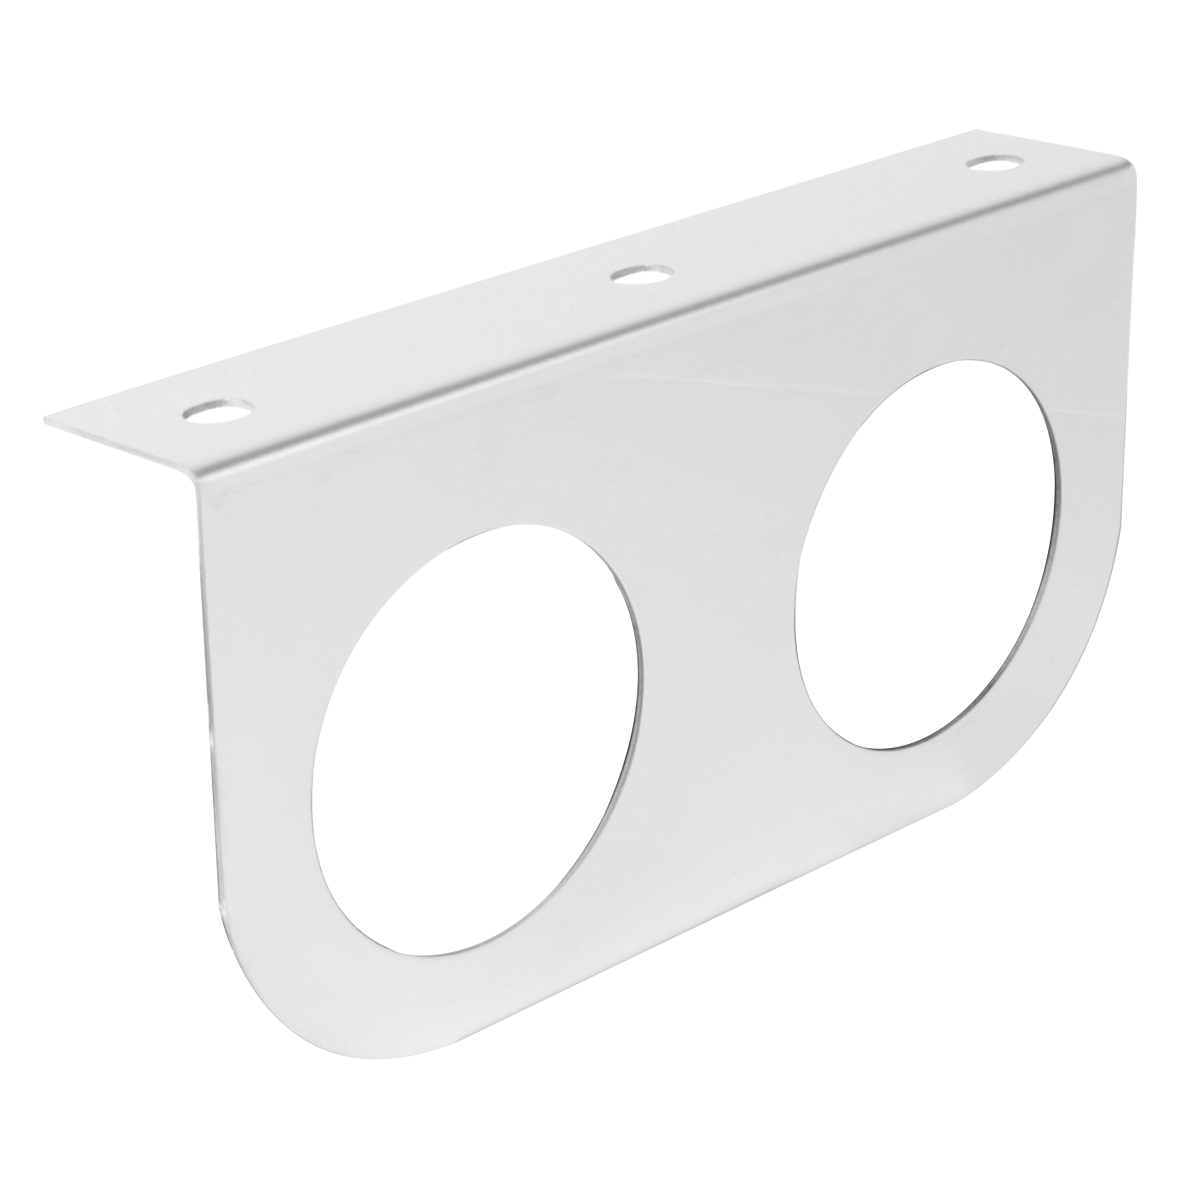 #86459 Stainless Steel Light Bracket Only